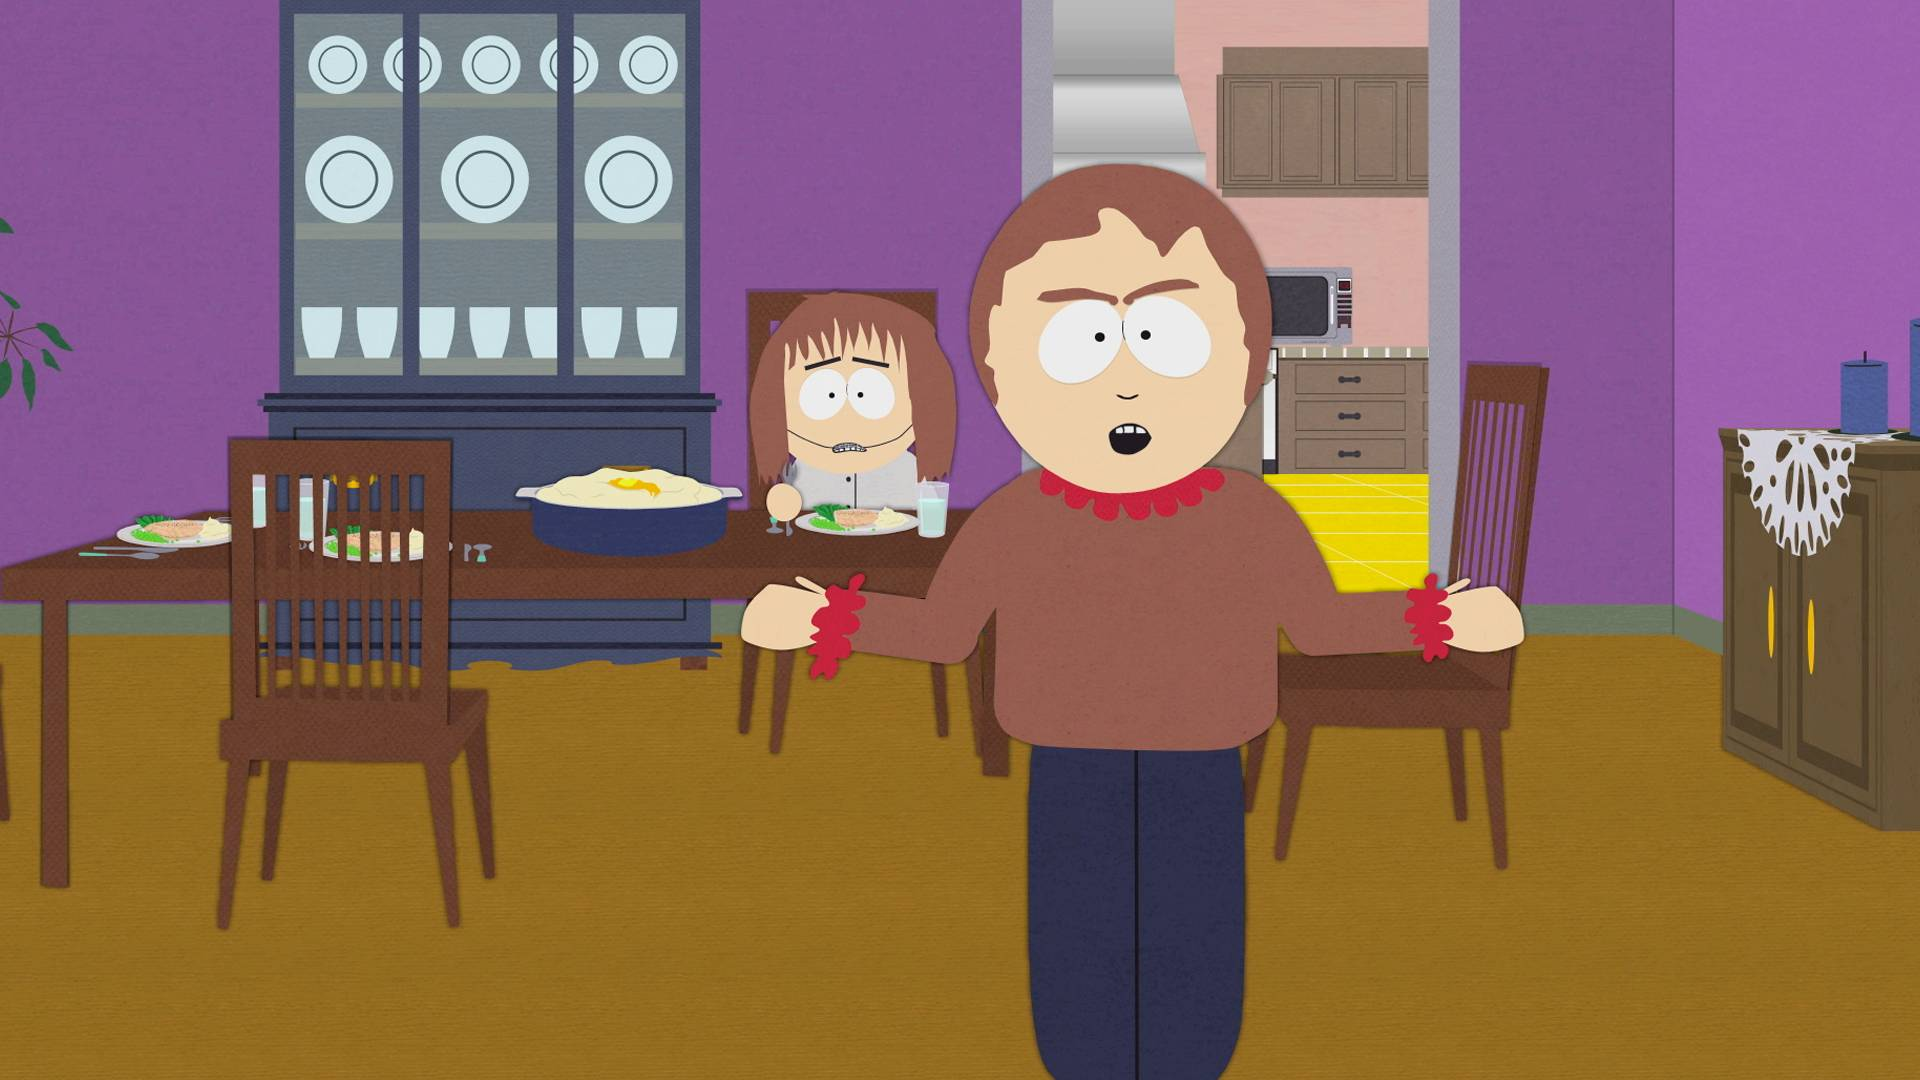 Trying To Have A Nice Dinner South Park Video Clip South Park Studios Us